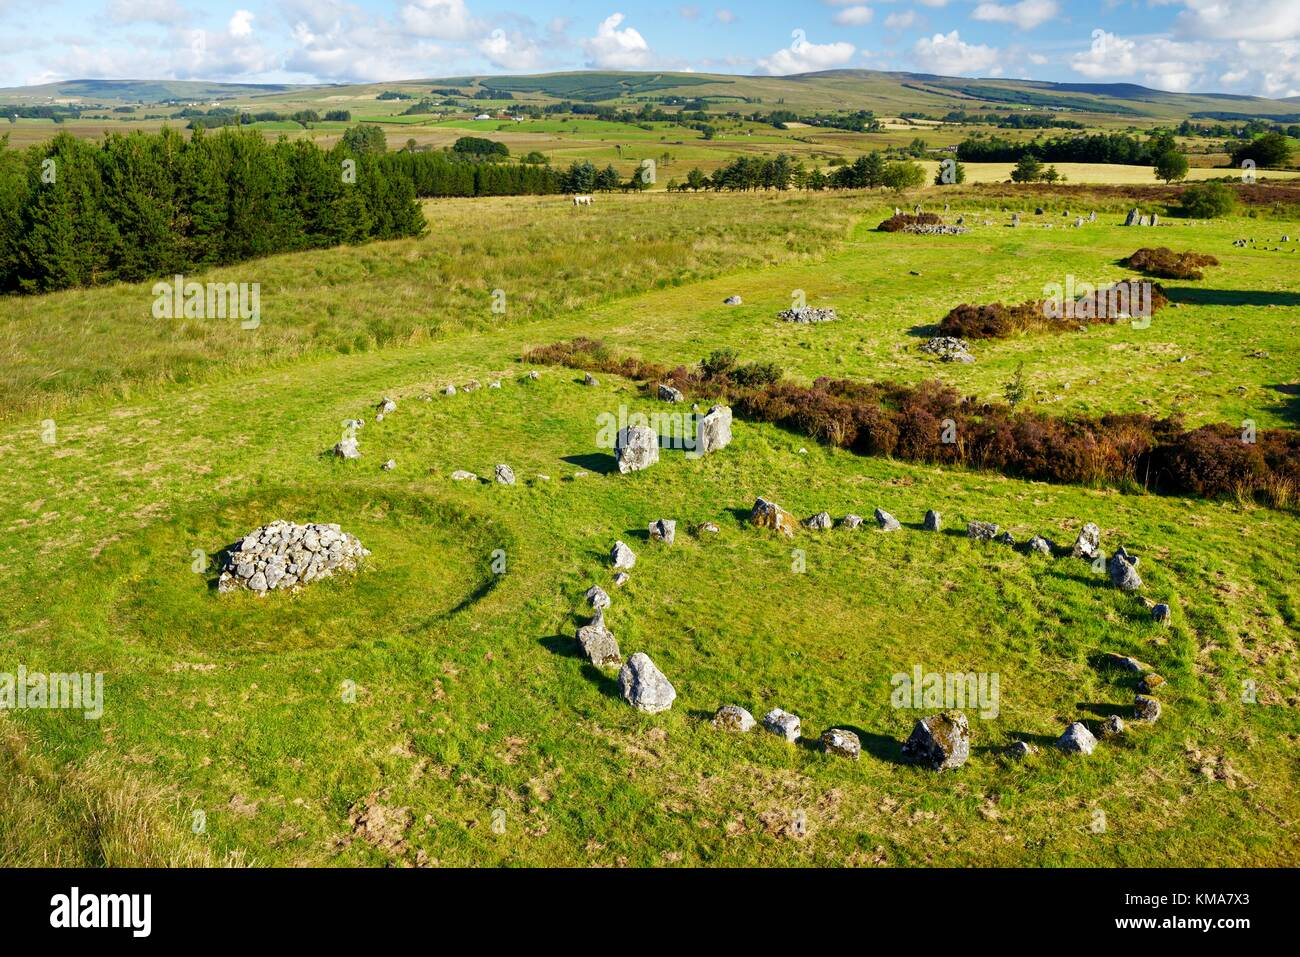 Beaghmore prehistoric stone circles circle alignment alignments. Sperrin Mountains, Co. Tyrone, N. Ireland, UK date - Stock Image